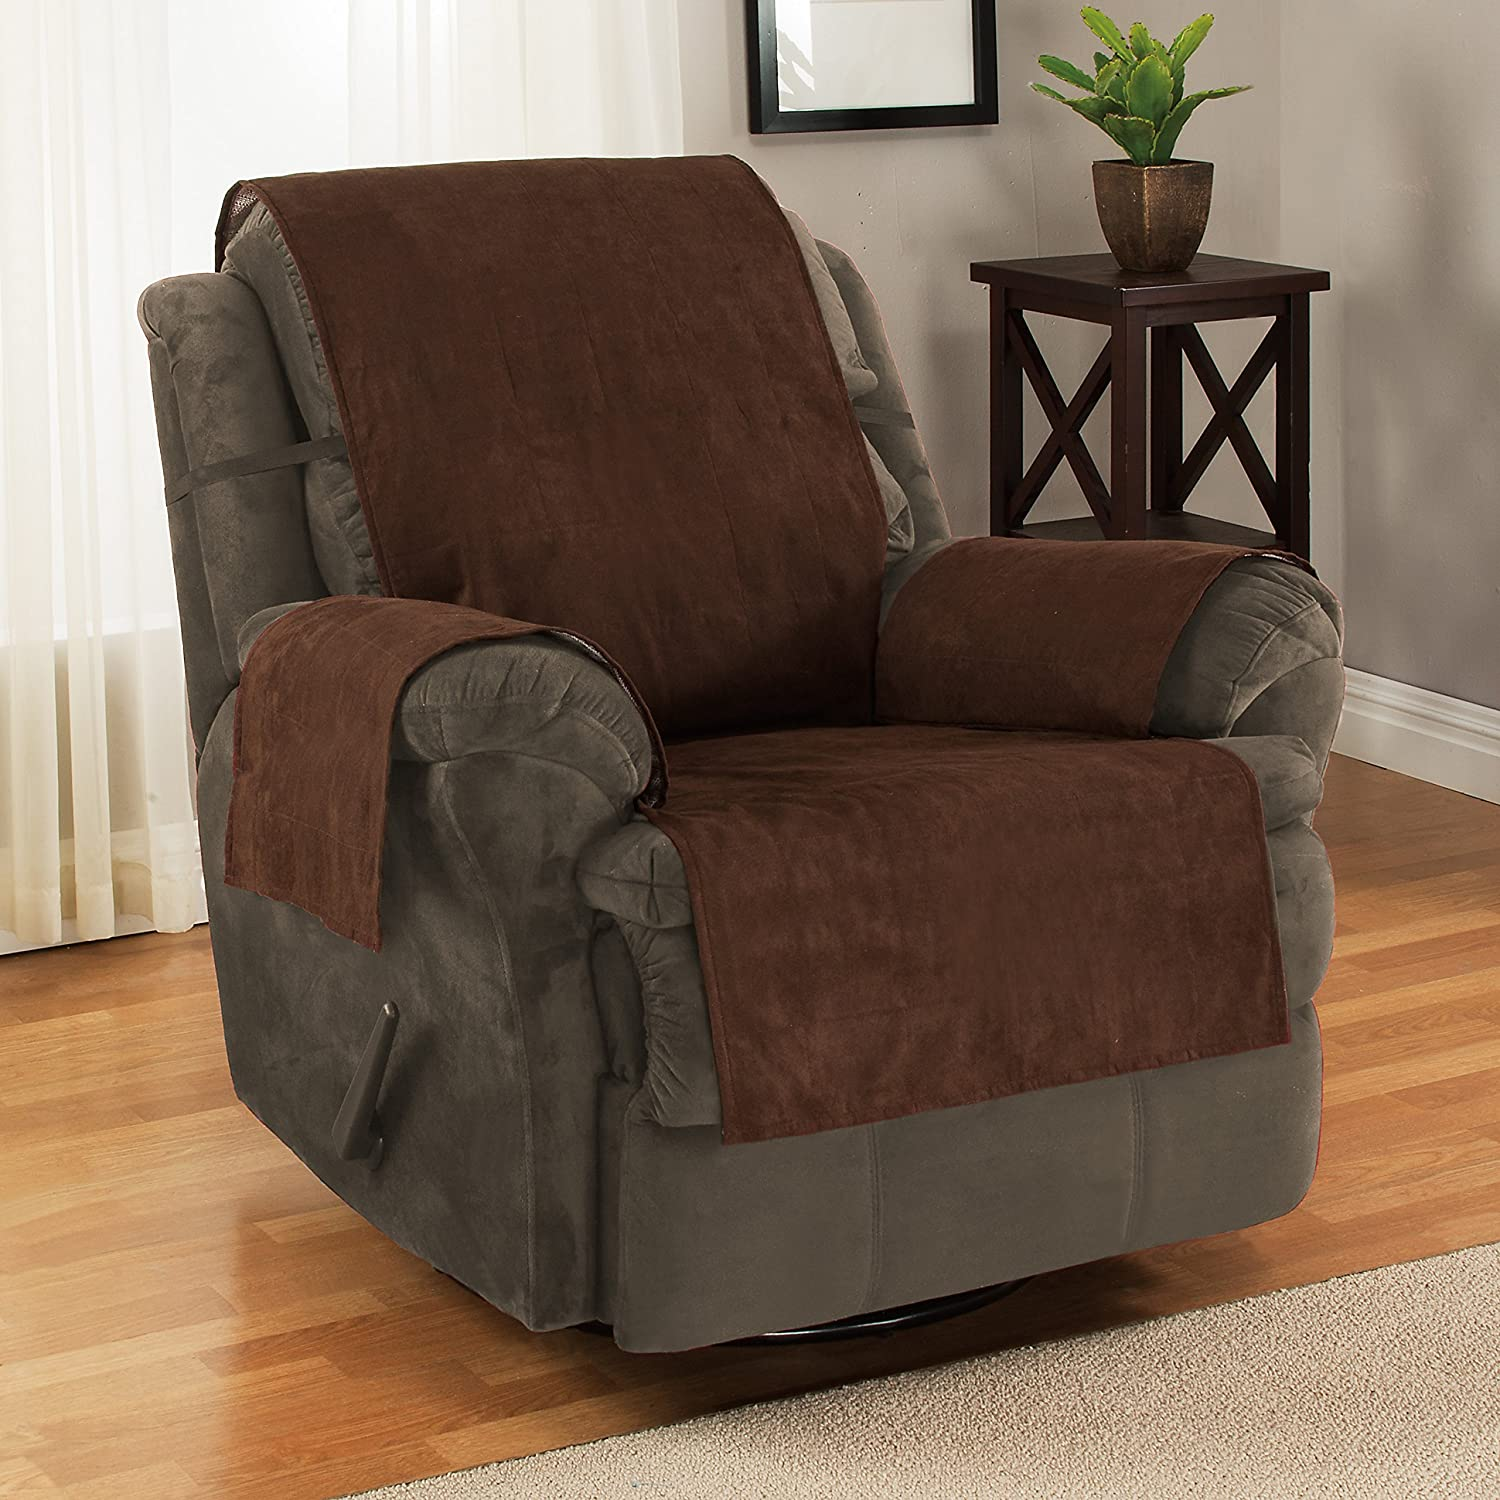 slipcover wayfair recliner home box day kathy cushion pdx ireland break reviews furniture slipcovers for recliners